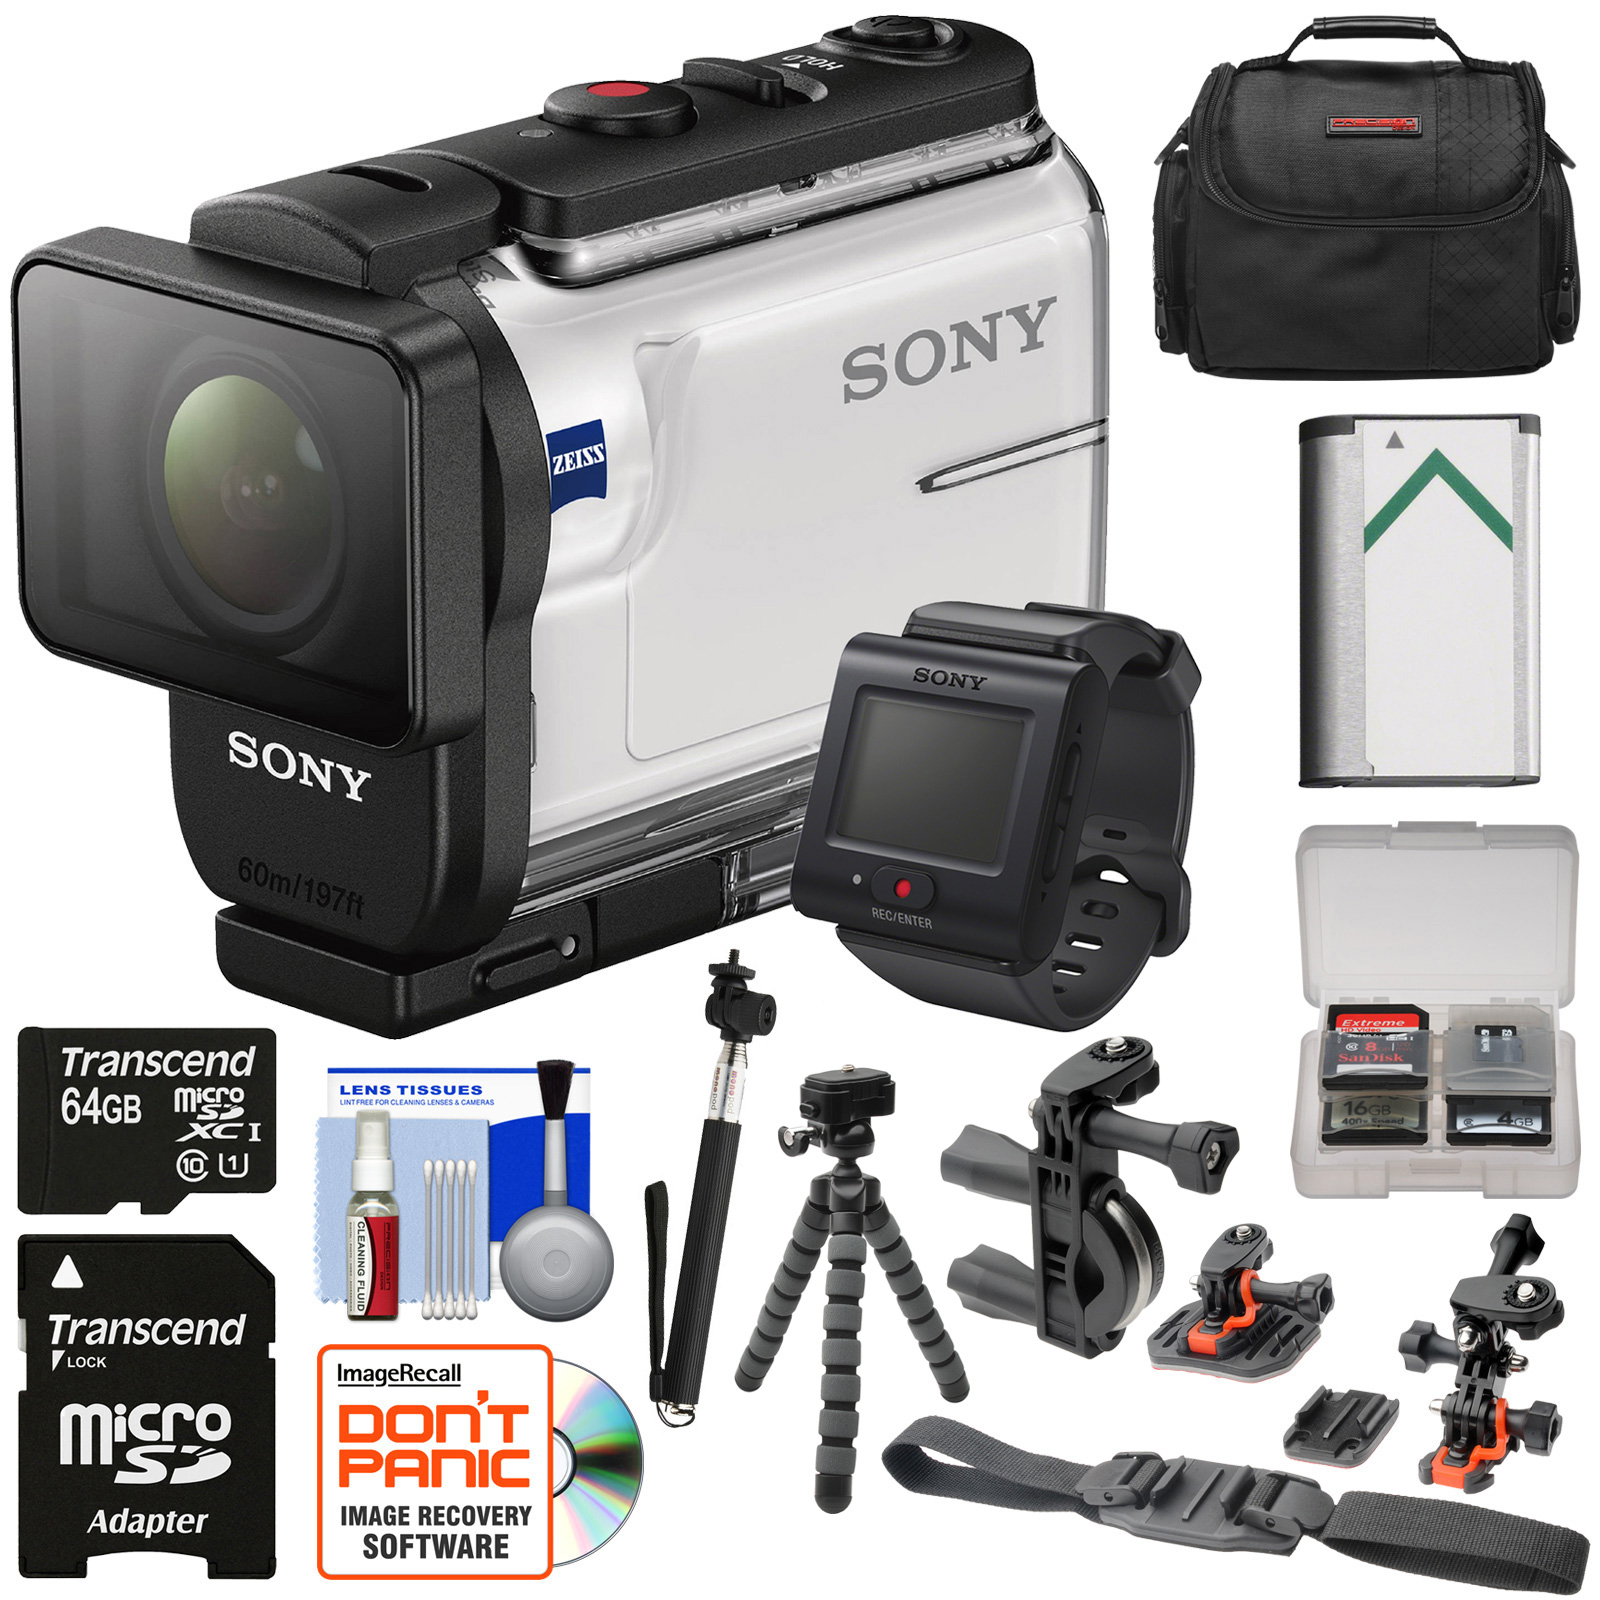 Sony Action Cam HDR-AS300R Wi-Fi HD Video Camera Camcorde...